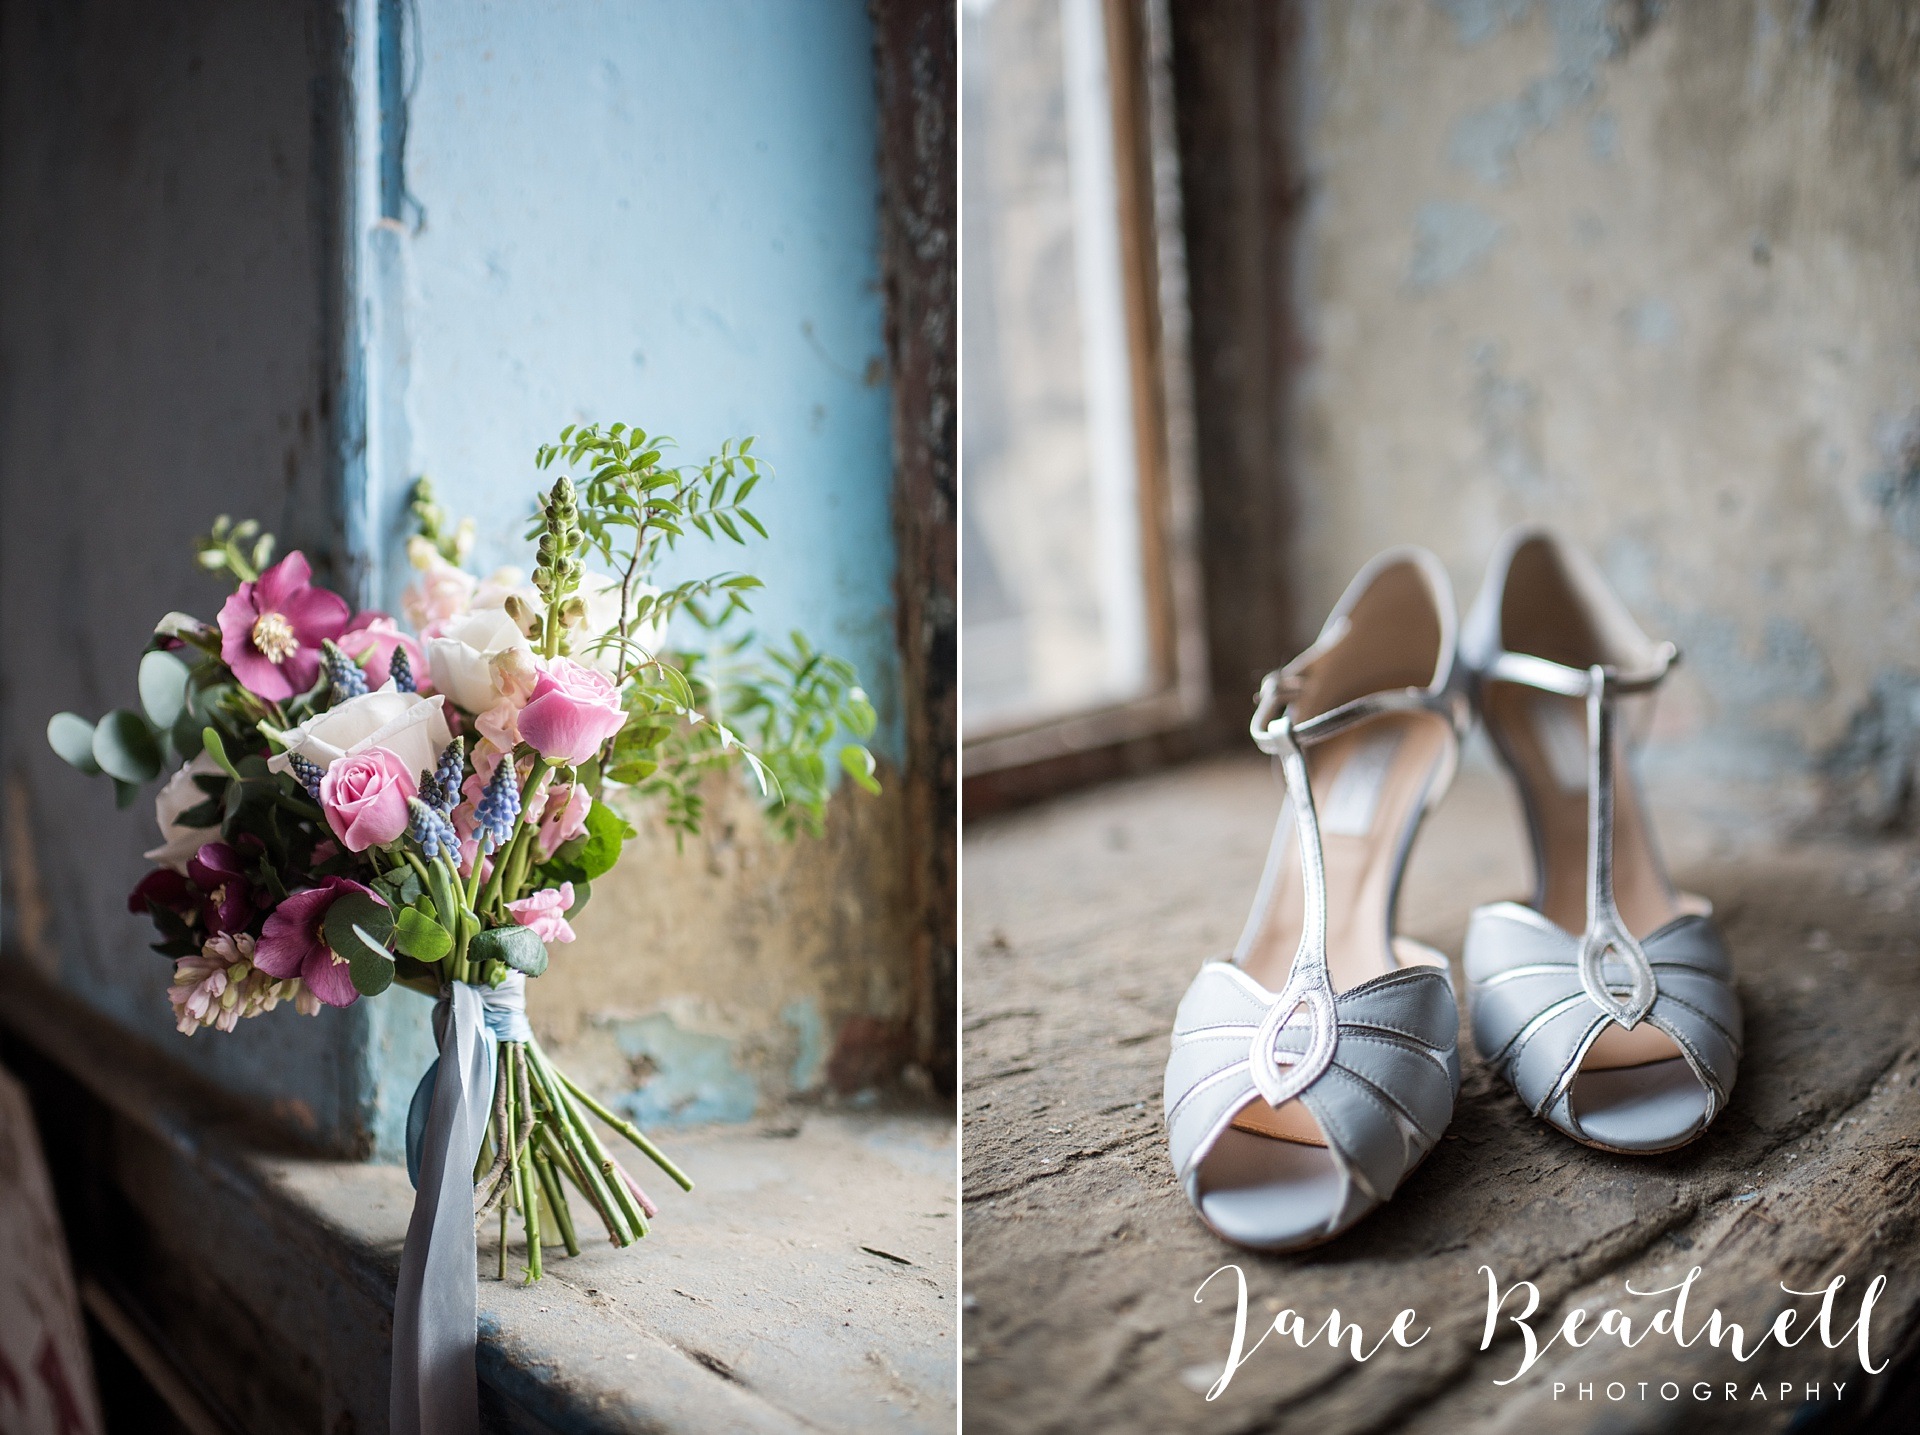 Ballet themed styled wedding shoot at Dalton Mills by Jane Beadnell Photography-0_0003